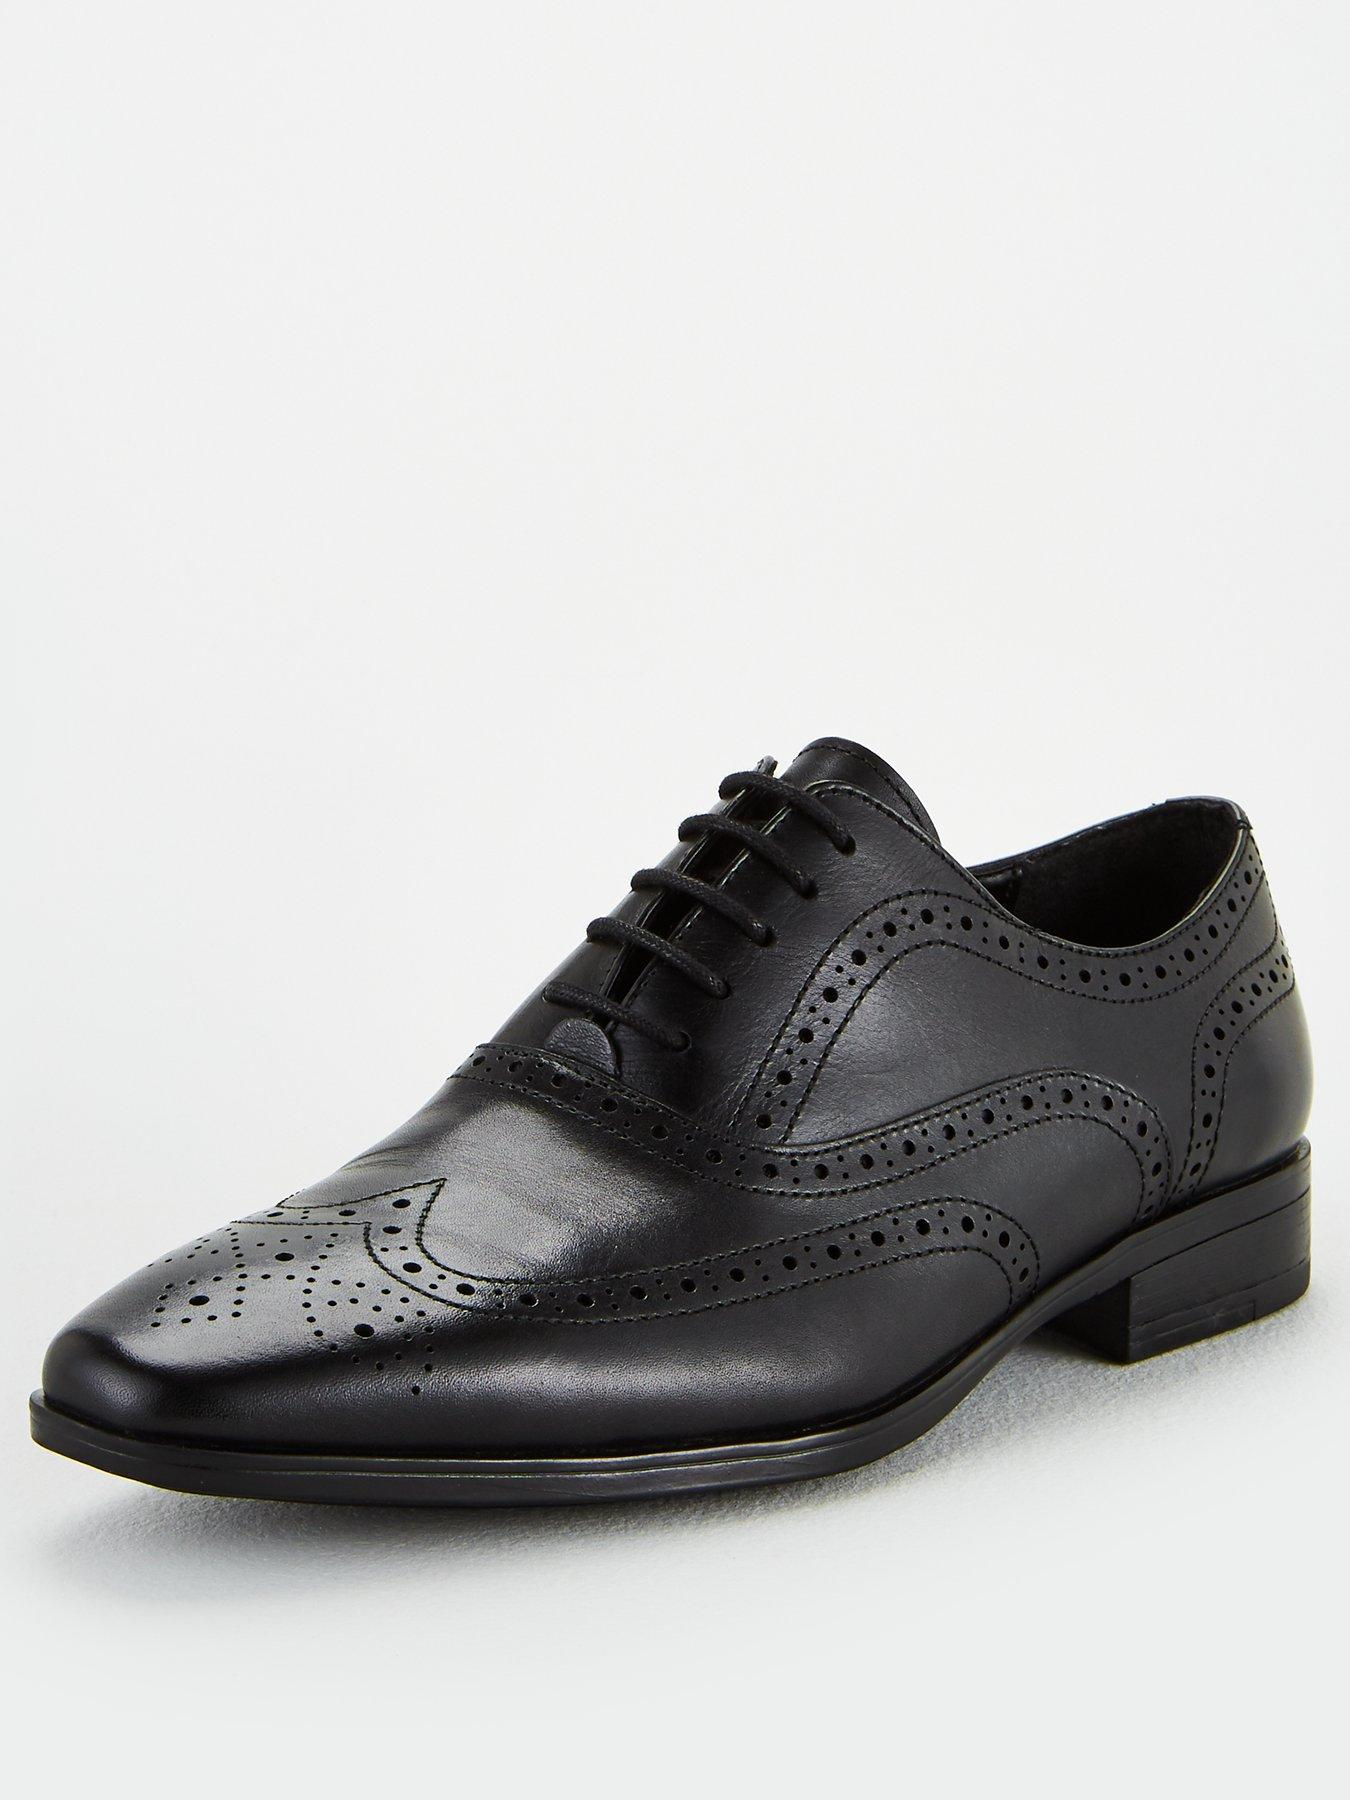 office shoes uk